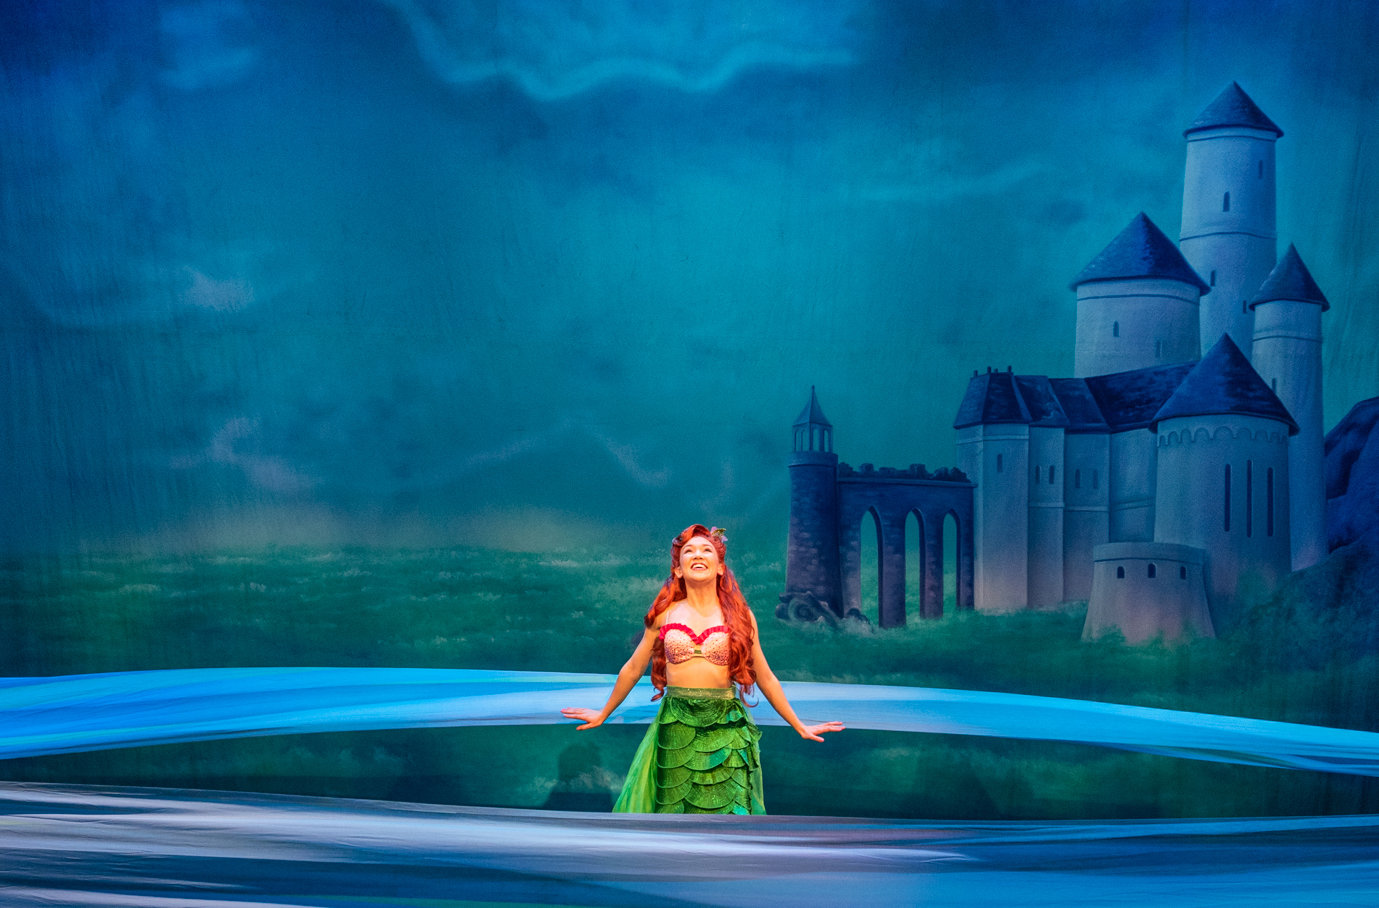 Kimberly Immanuel as Ariel sings her hauntingly beautiful songs, attracting the debonair Prince Eric as she longs to live in the world above.